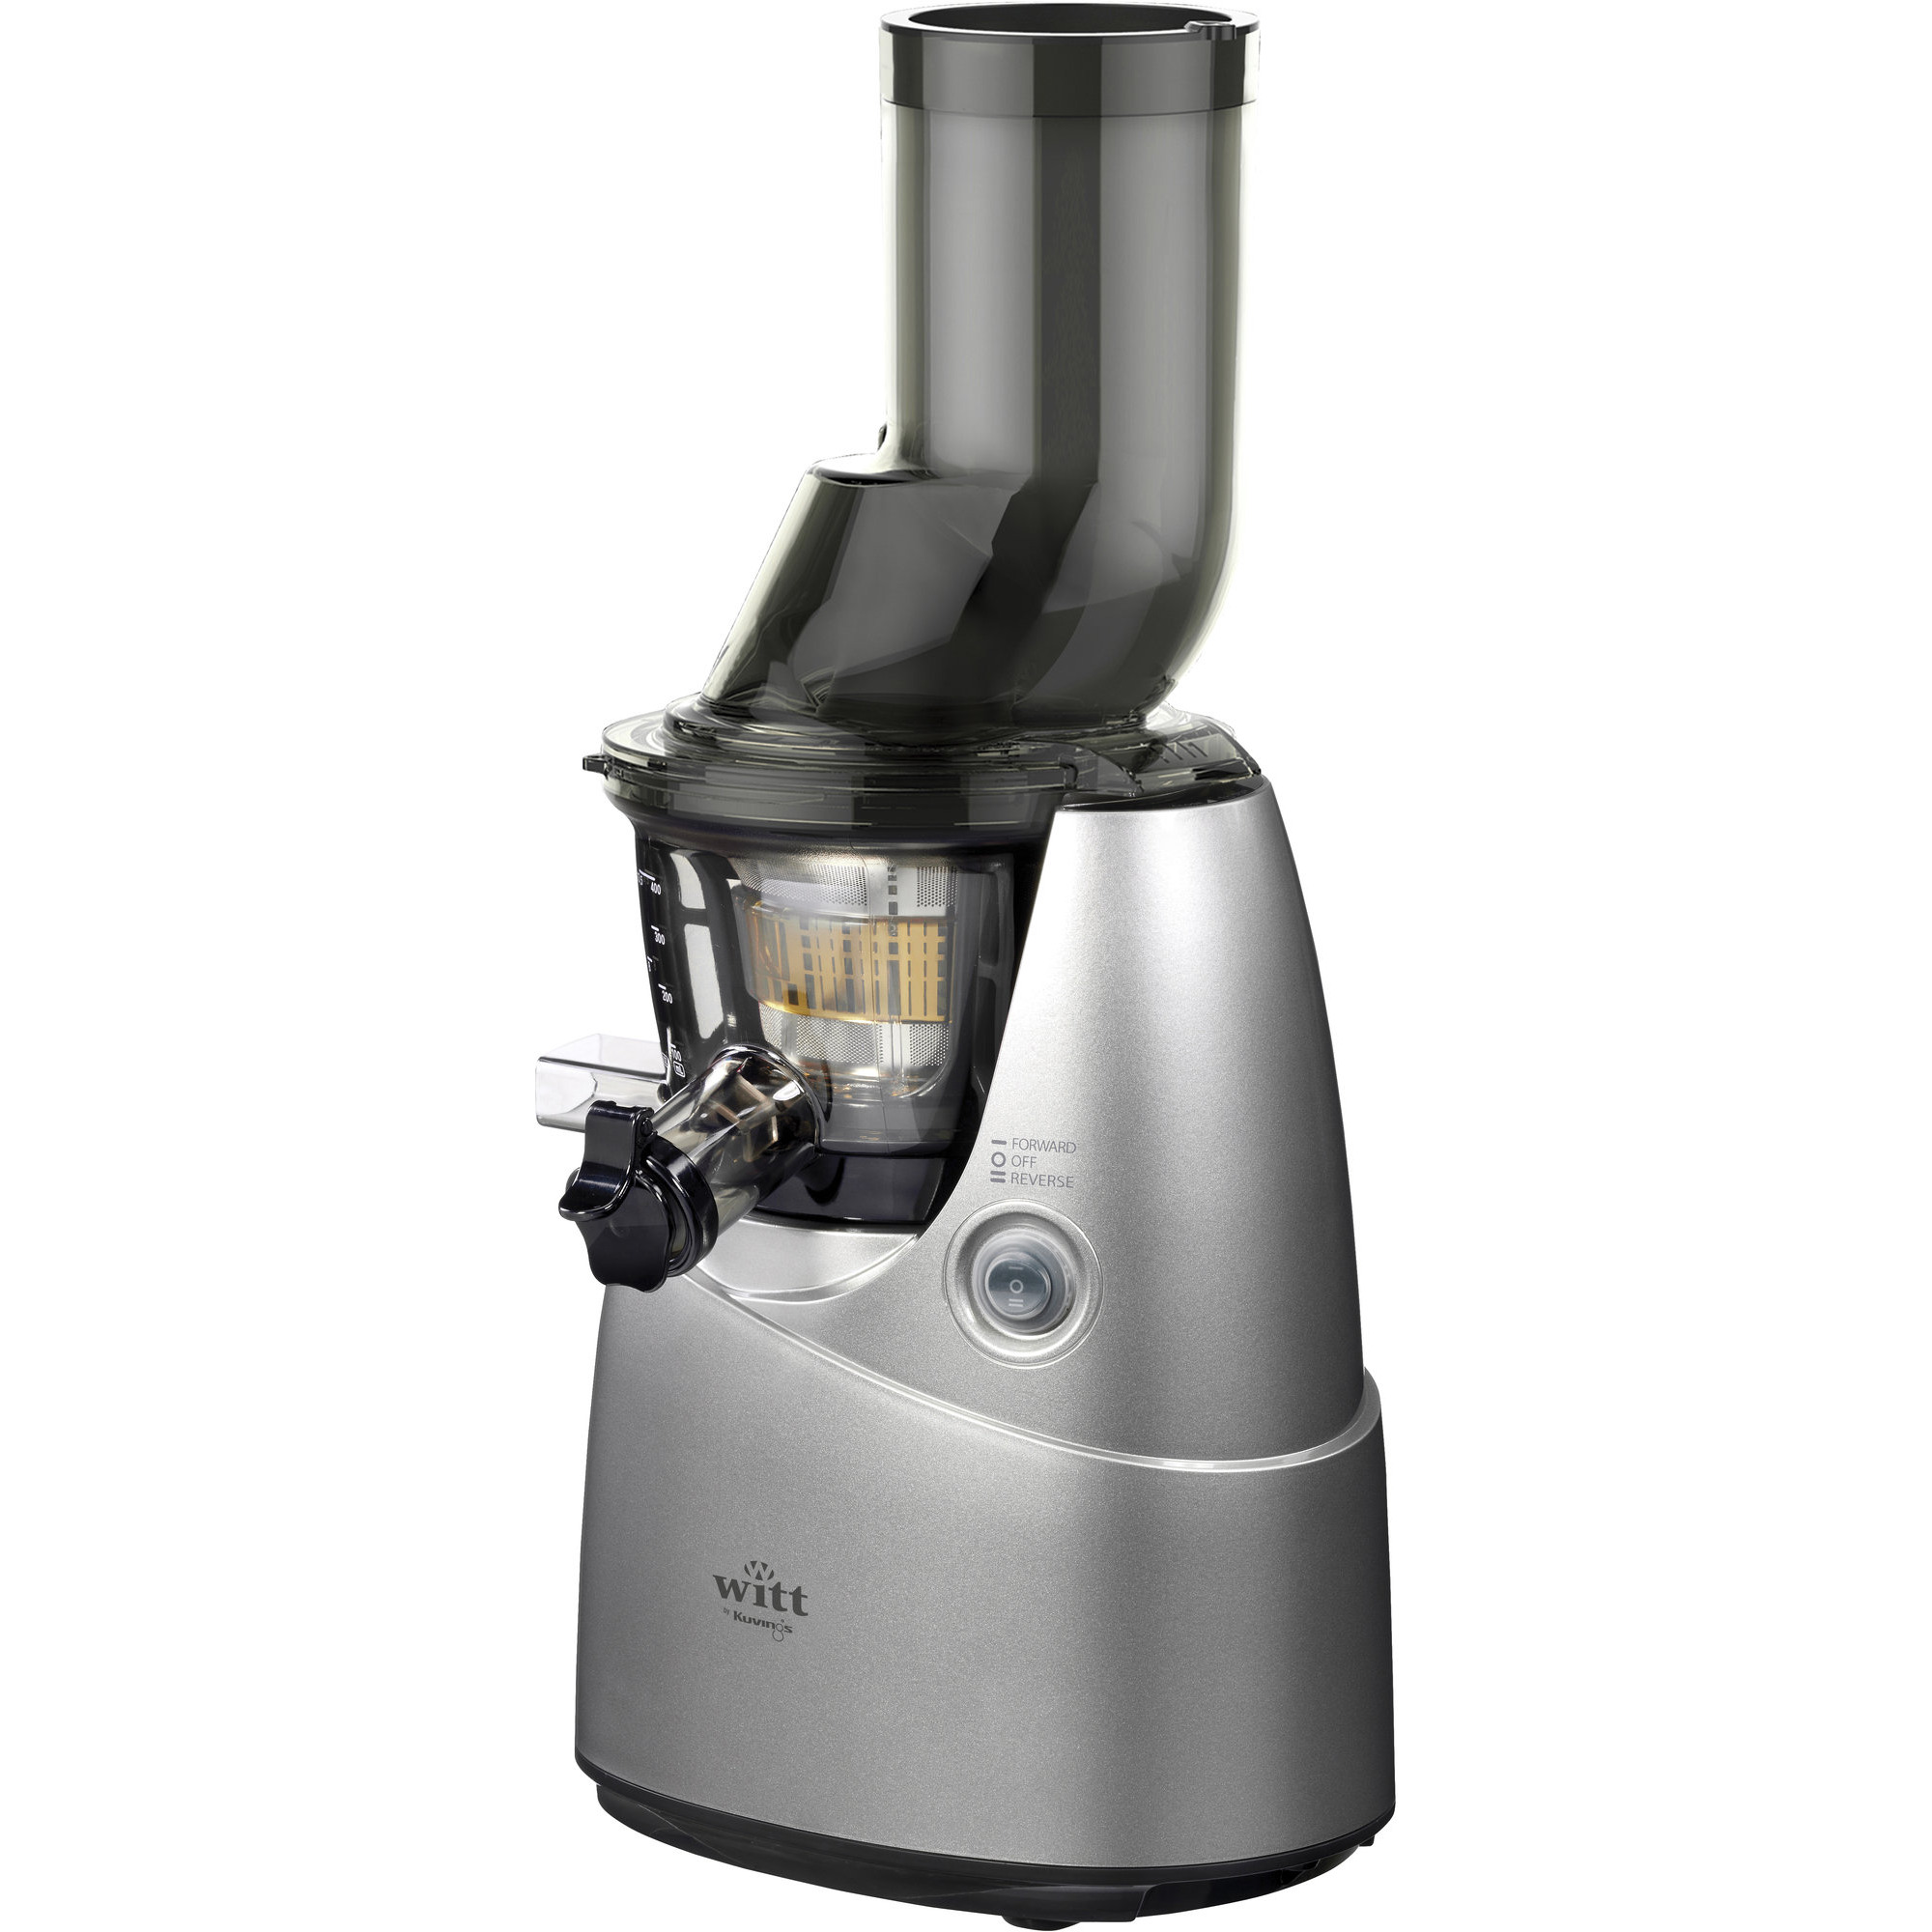 Kuvings Slow Juicer Demo : Kuvings B6100 Silver fran Witt by Kuvings Gratis leverans